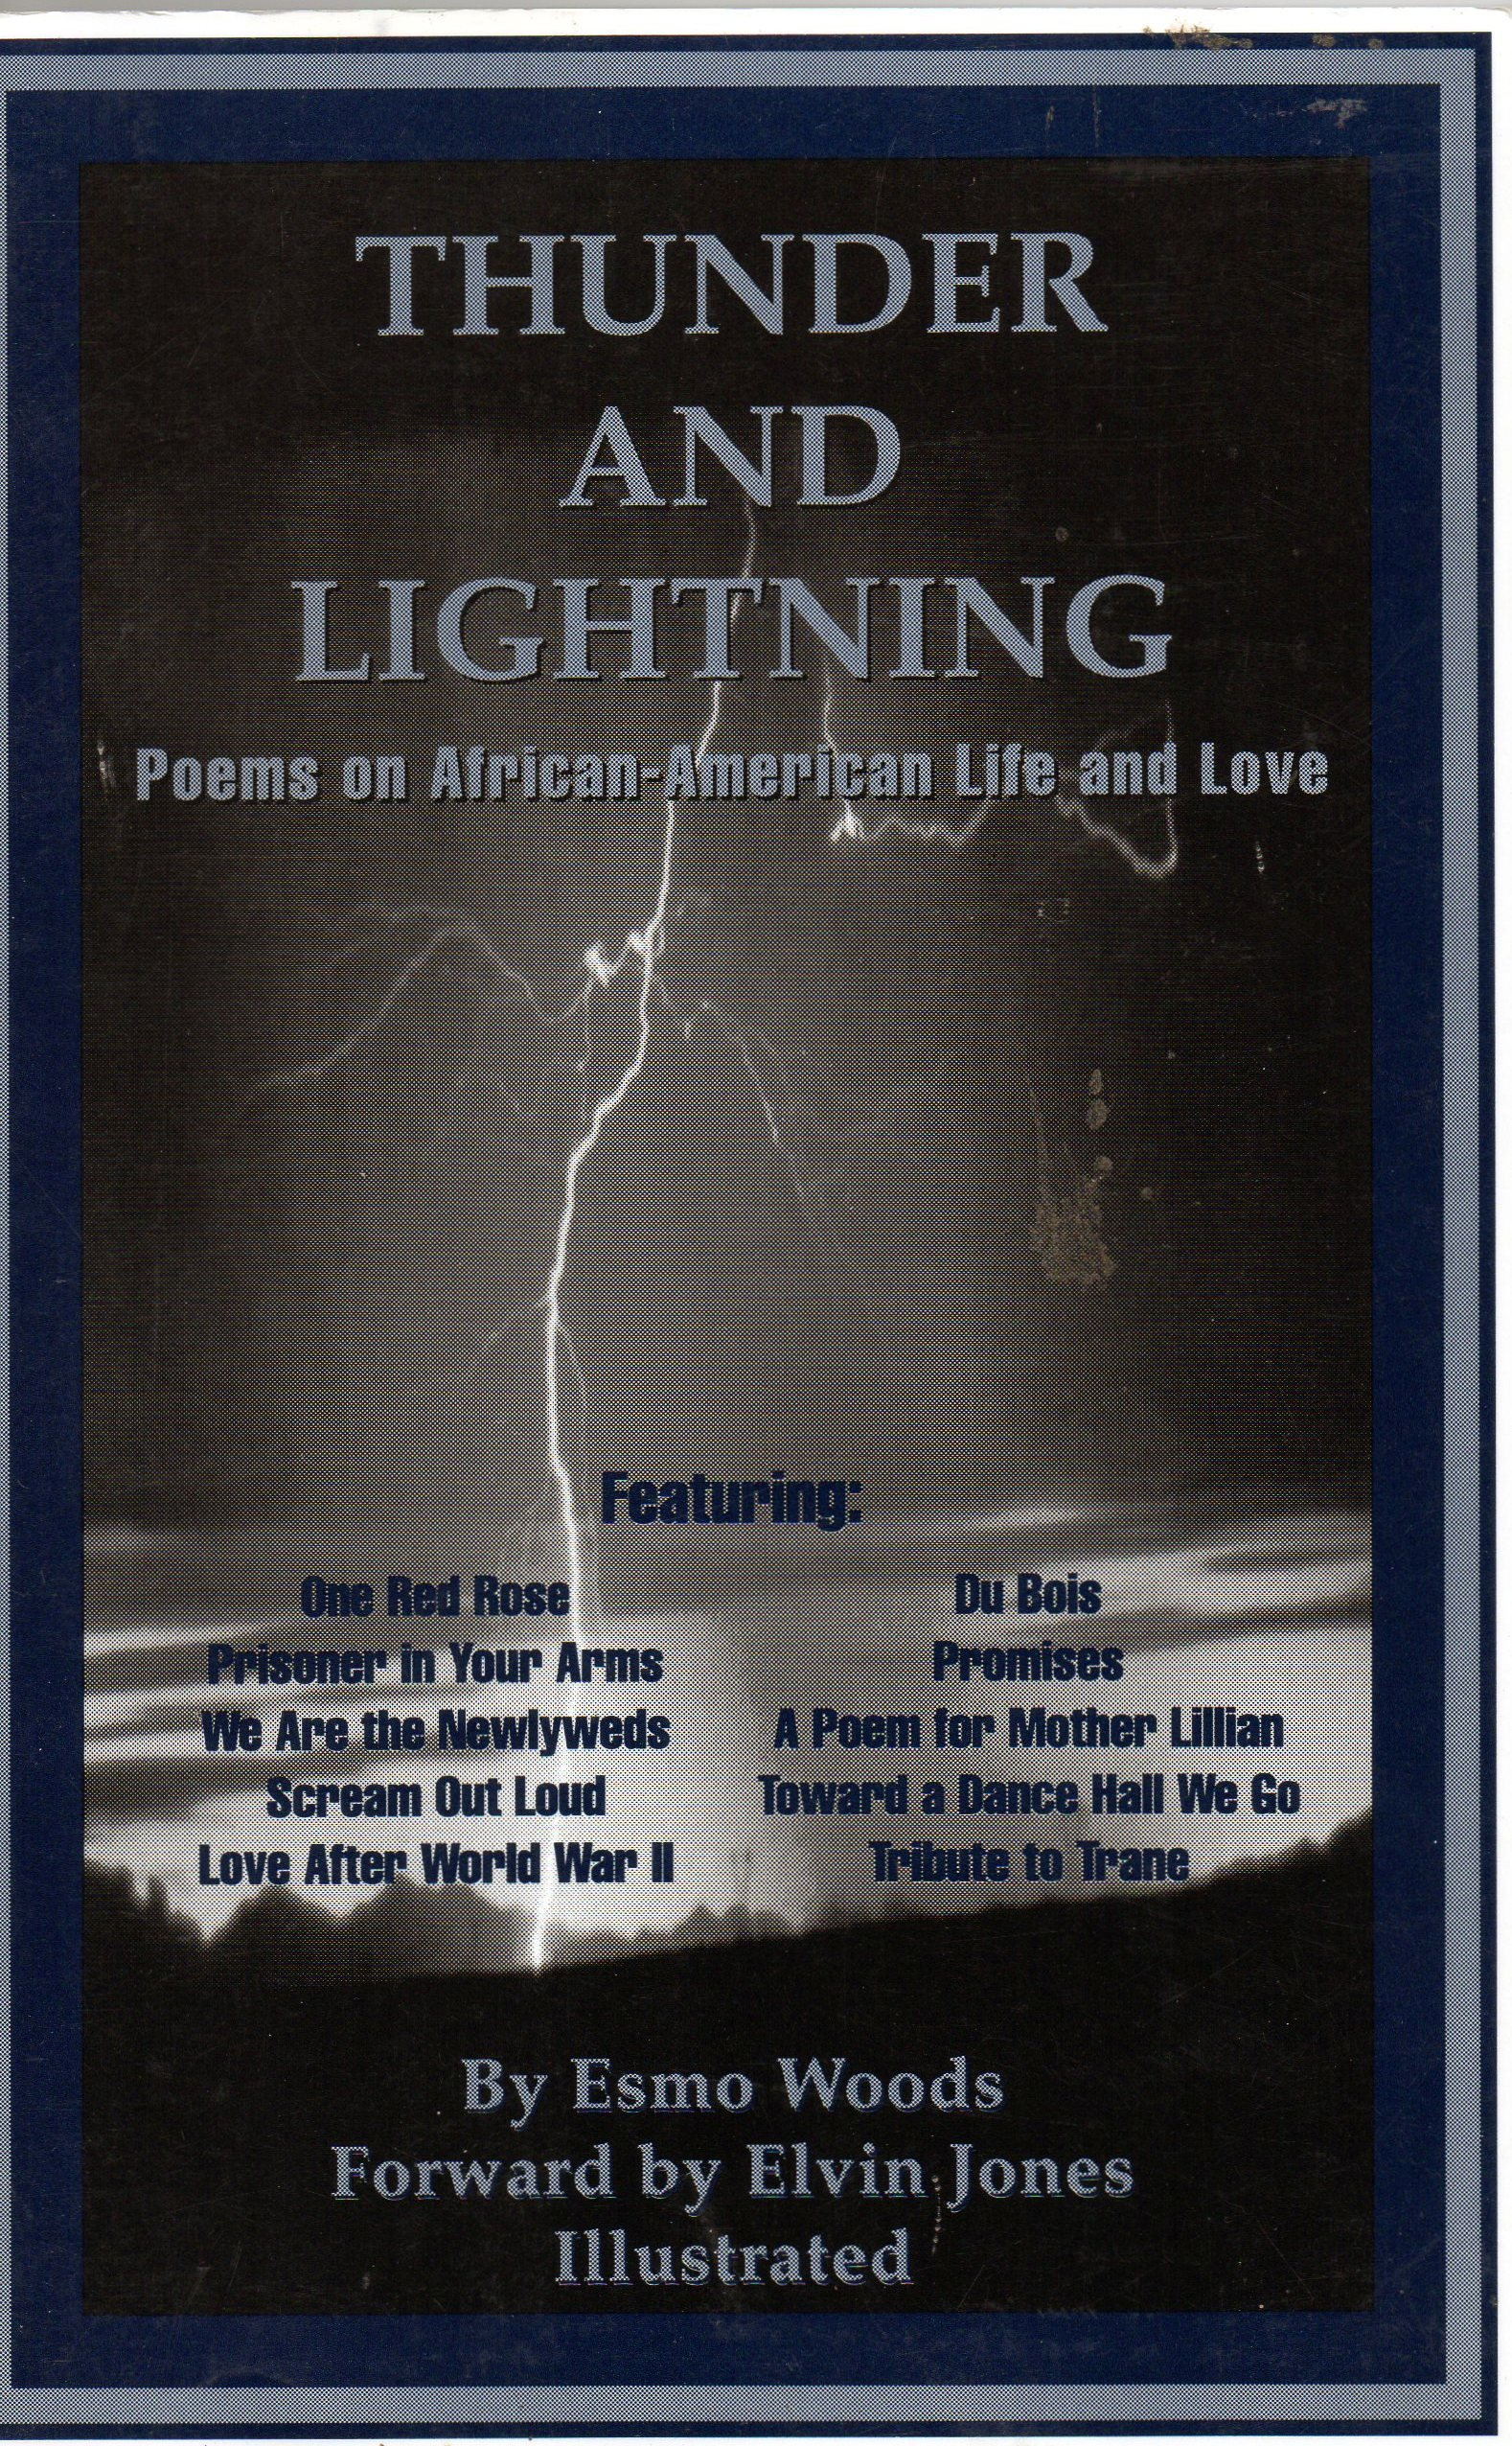 Thunder and Lightning - Poems on African-American Life and